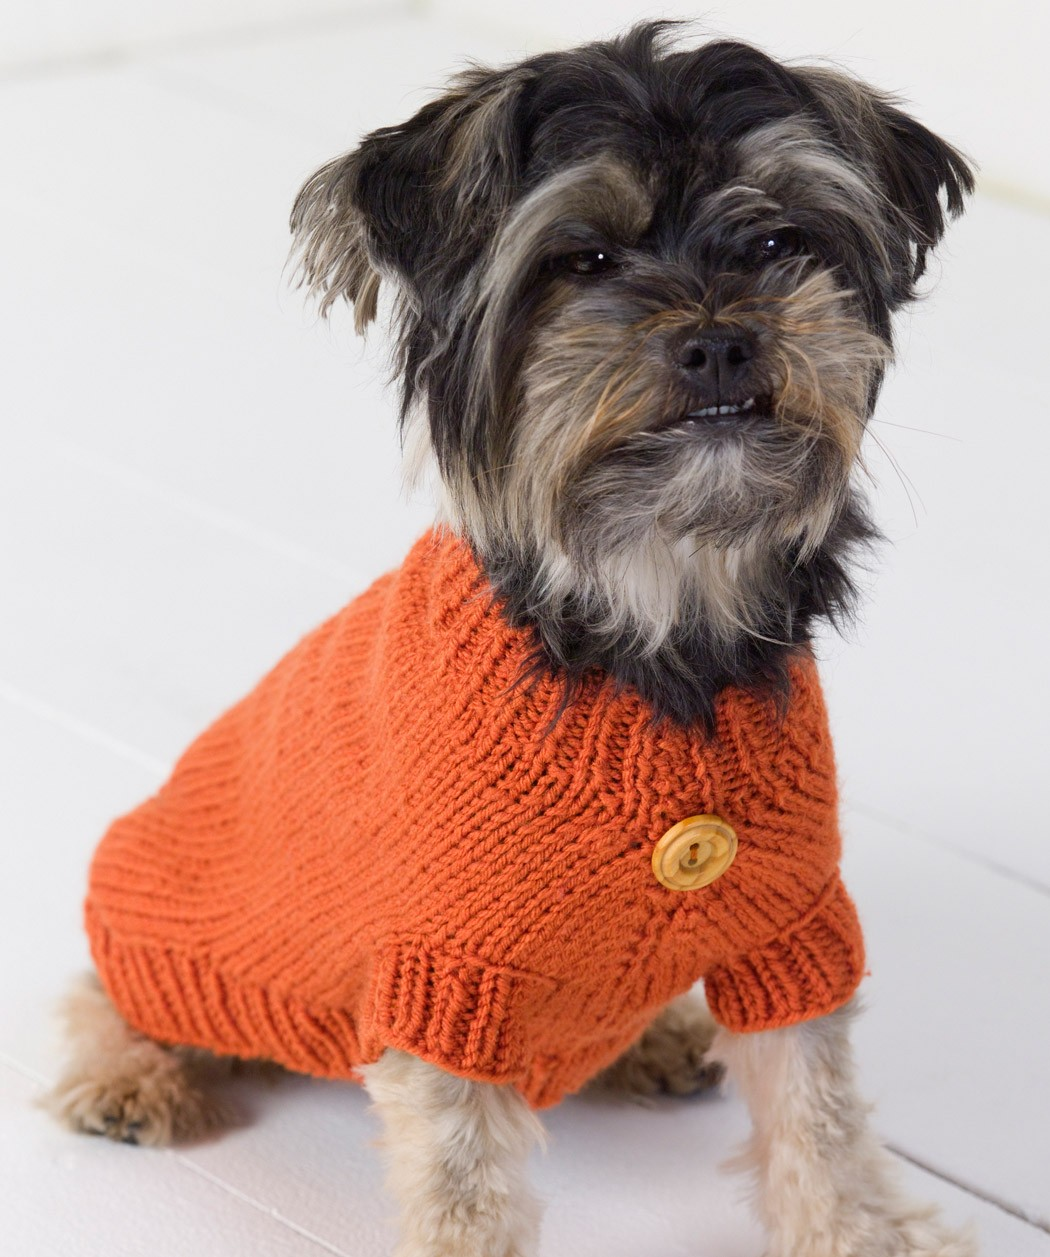 Knitting Pattern For Dog Coat Large : Dog Sweater Knitting Pattern A Knitting Blog